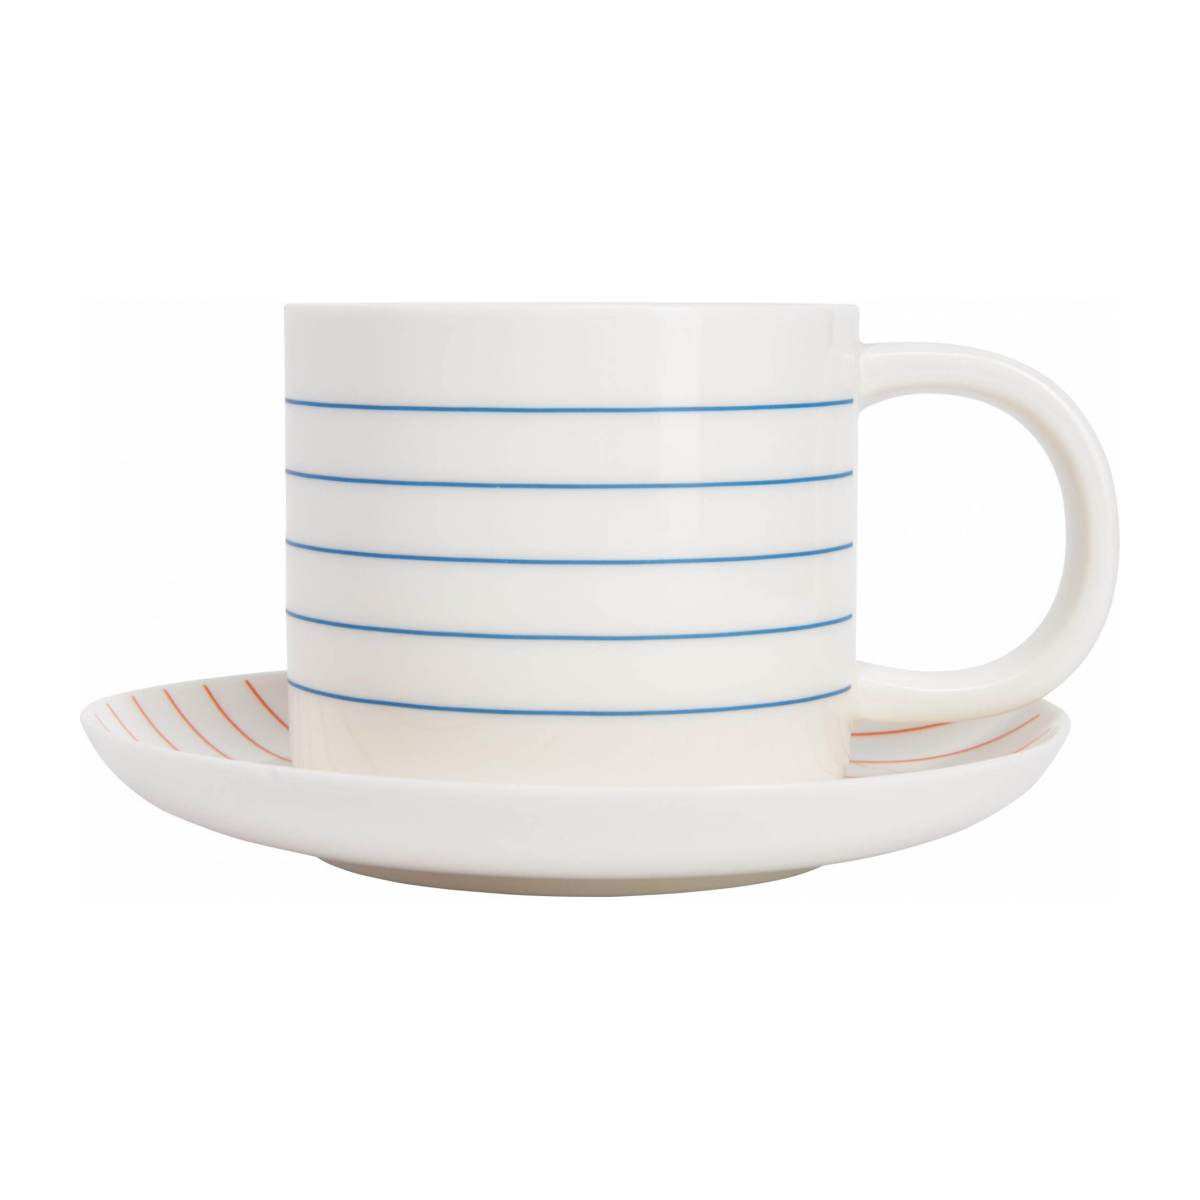 Tea cup et soucoupe made of porcelain, with red stripes n°3